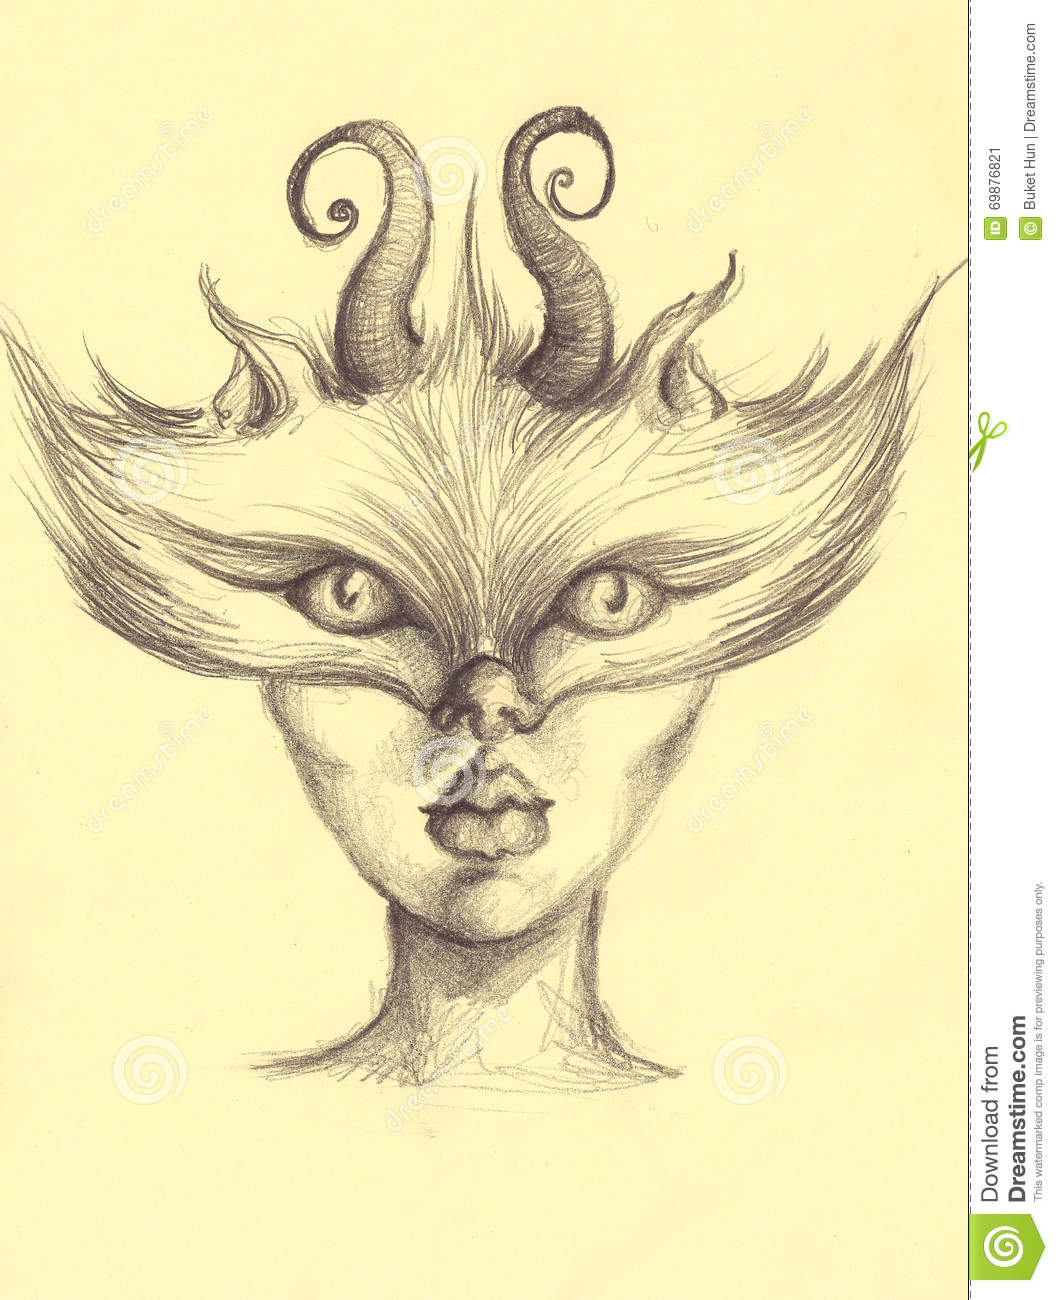 Wolf and human face combined with horns illustration art pencil drawing portrait sketch charcoal painting